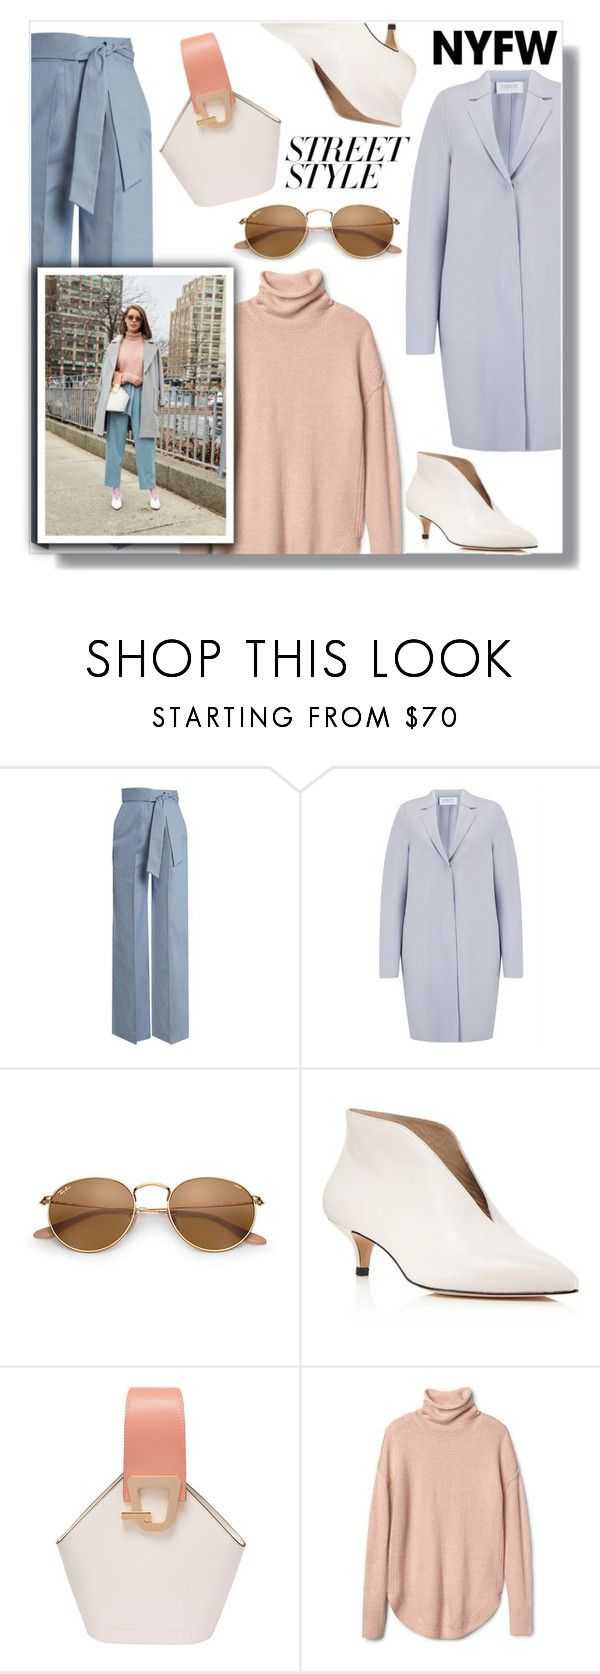 """""""Win It! NYFW: Street Style"""" by the-geek-goddess on Polyvore featuring Vika Gazinskaya, Harris Wharf London, Pour La Victoire, Danse Lente, contestentry and nyfwstreetstyle"""